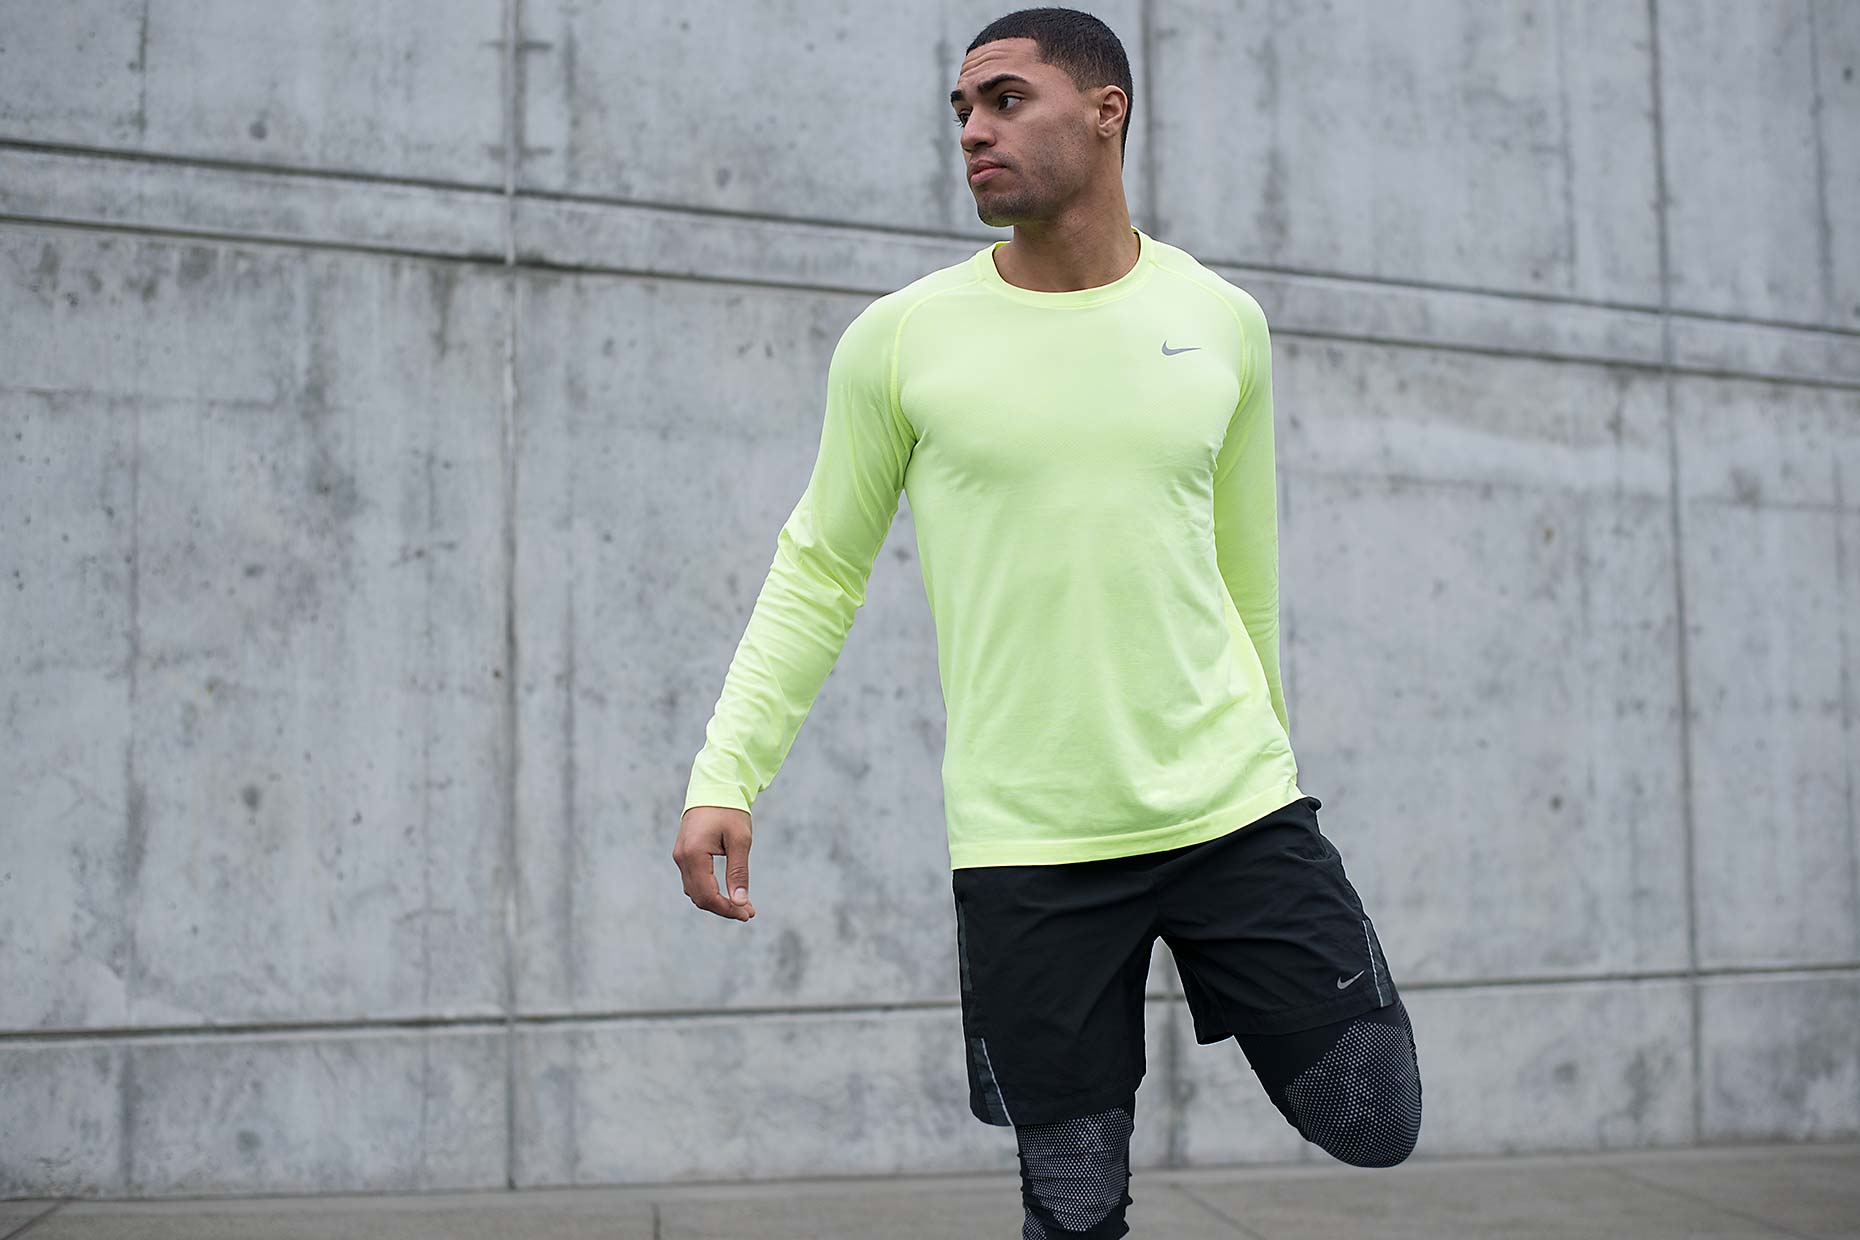 Ian-Coble-Running-Fitness-Health-Nike-Seattle-6